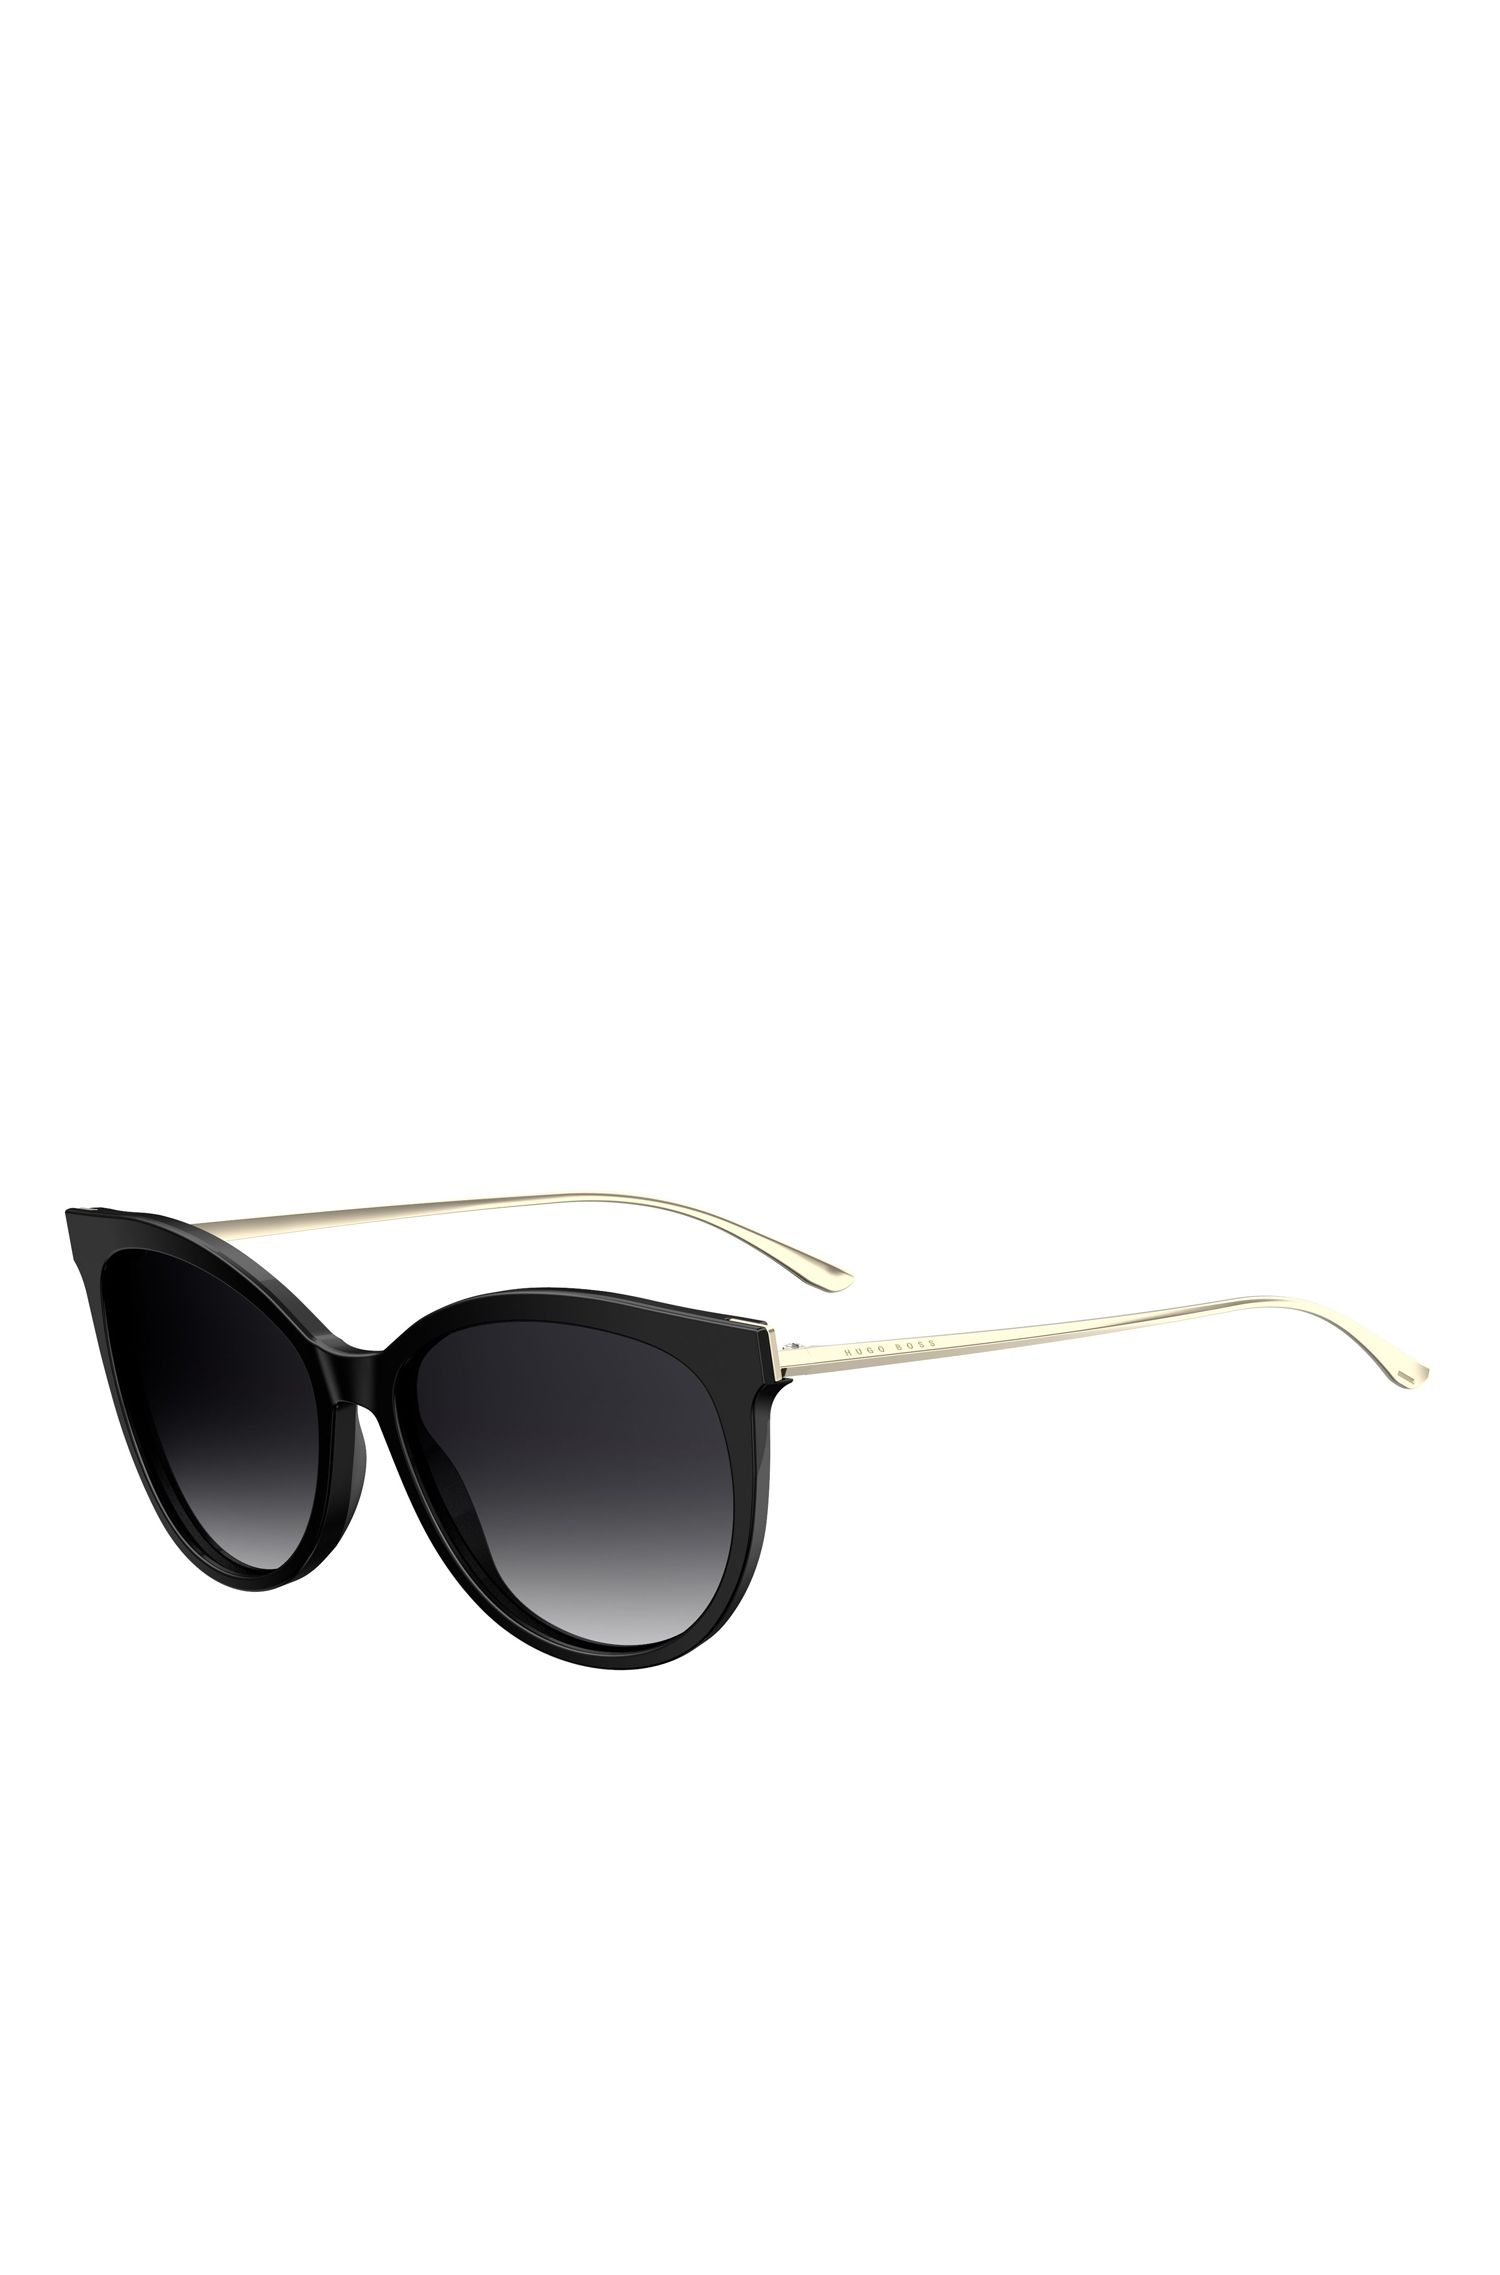 Black Cat-eye Sunglasses | BOSS 0892S